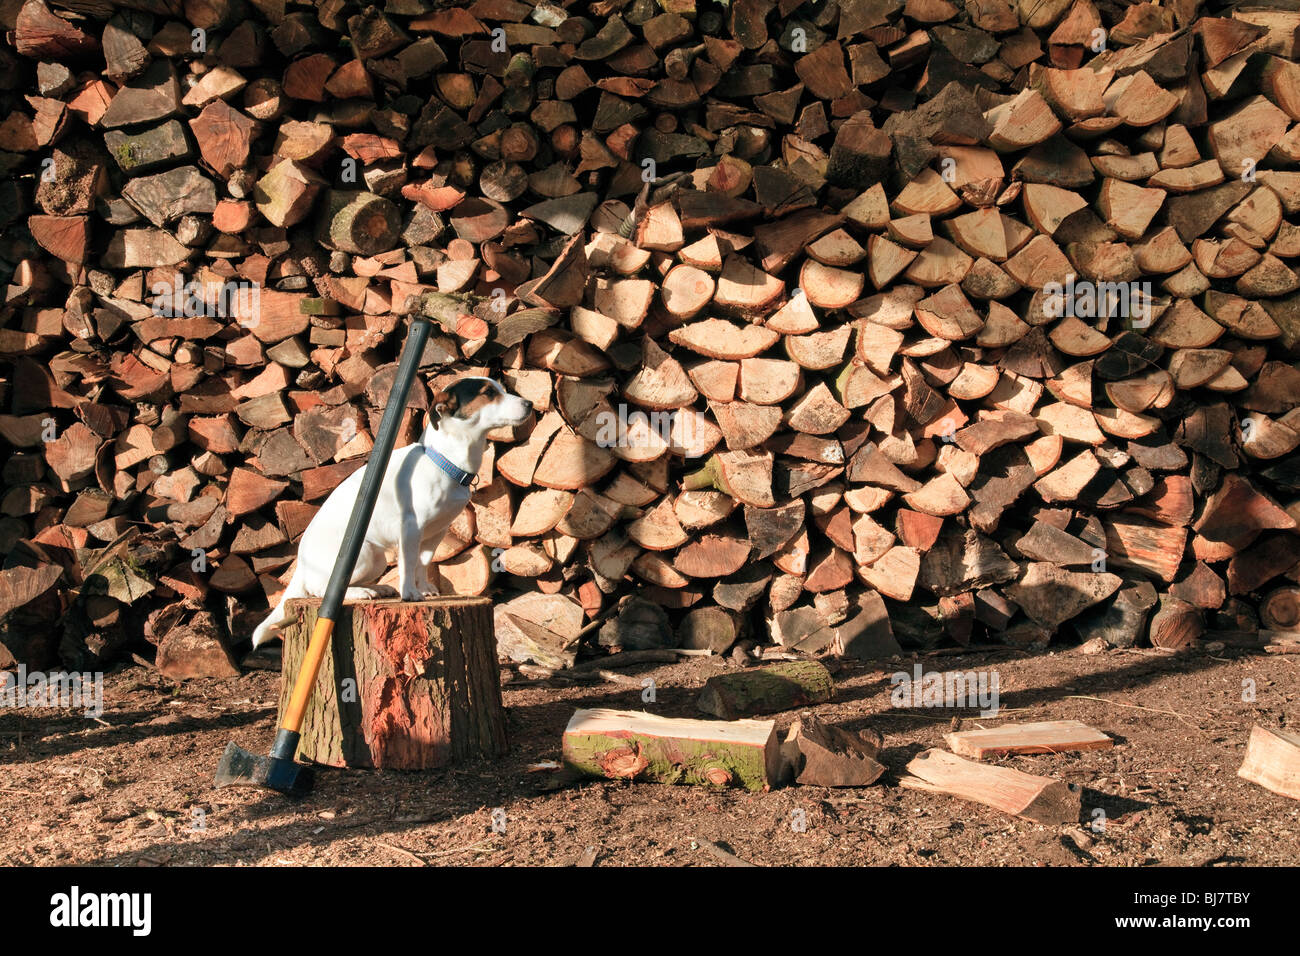 a-pile-of-logs-for-firewood-BJ7TBY.jpg